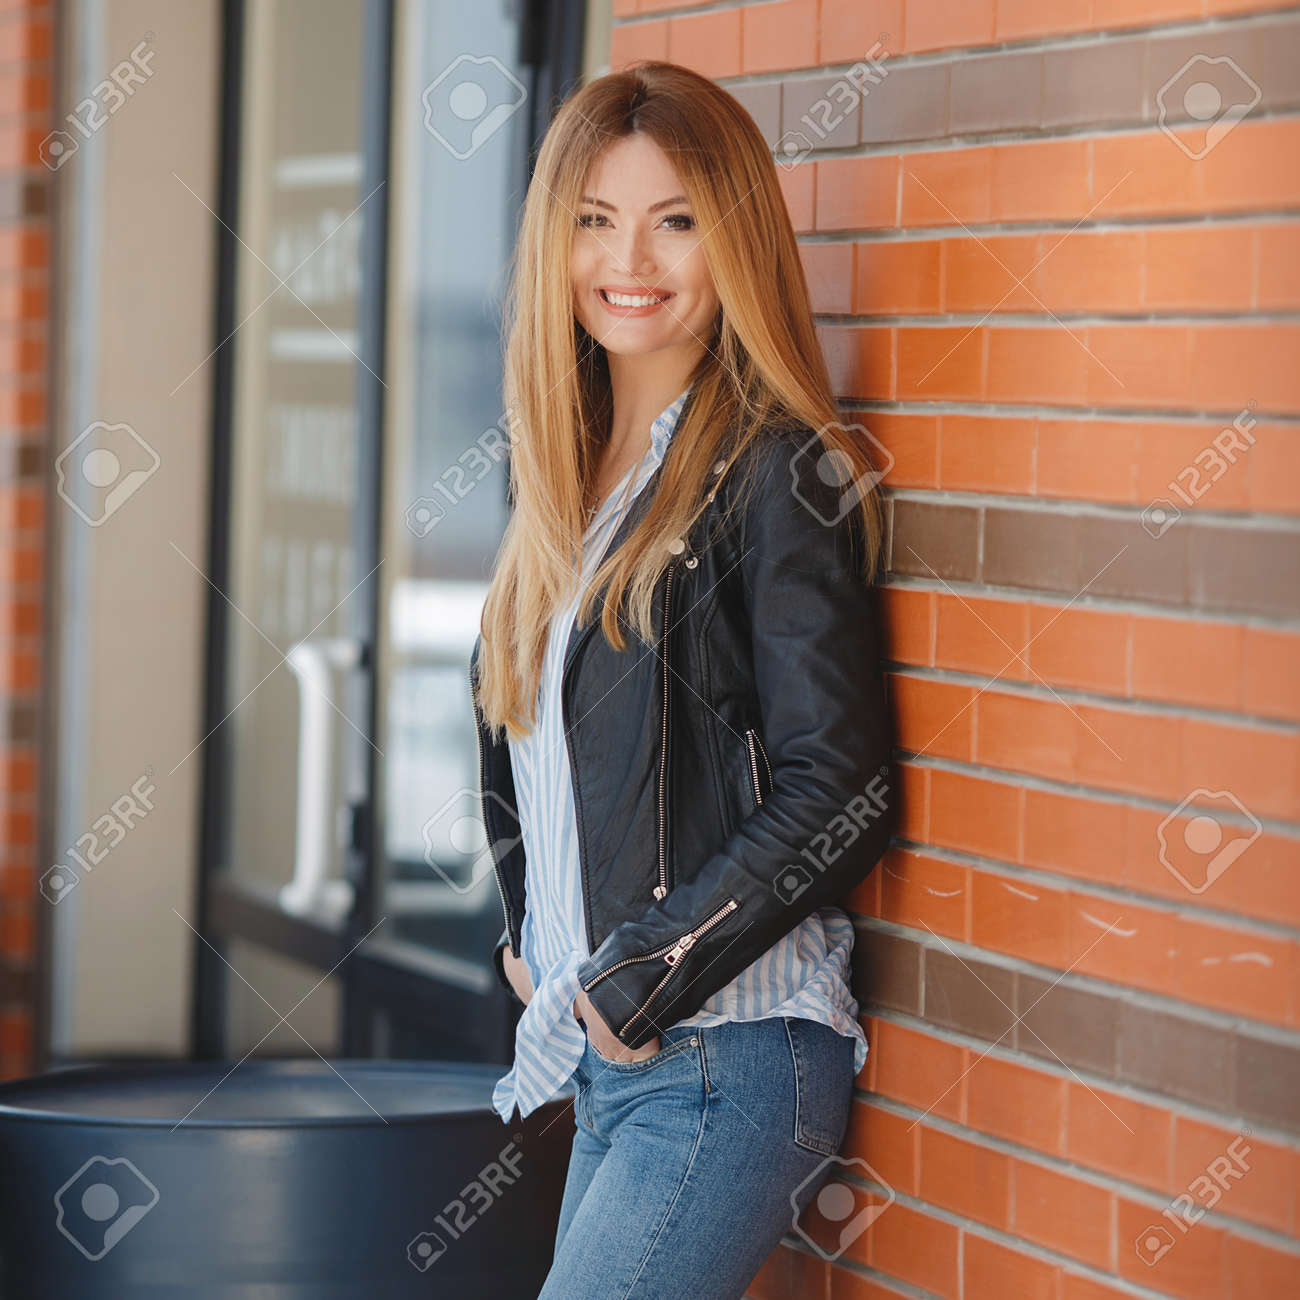 81bfa9a3aa648 A slender, tall, beautiful woman, model, long straight red hair, dressed in  a light striped shirt, blue jeans and a black leather jacket, ...